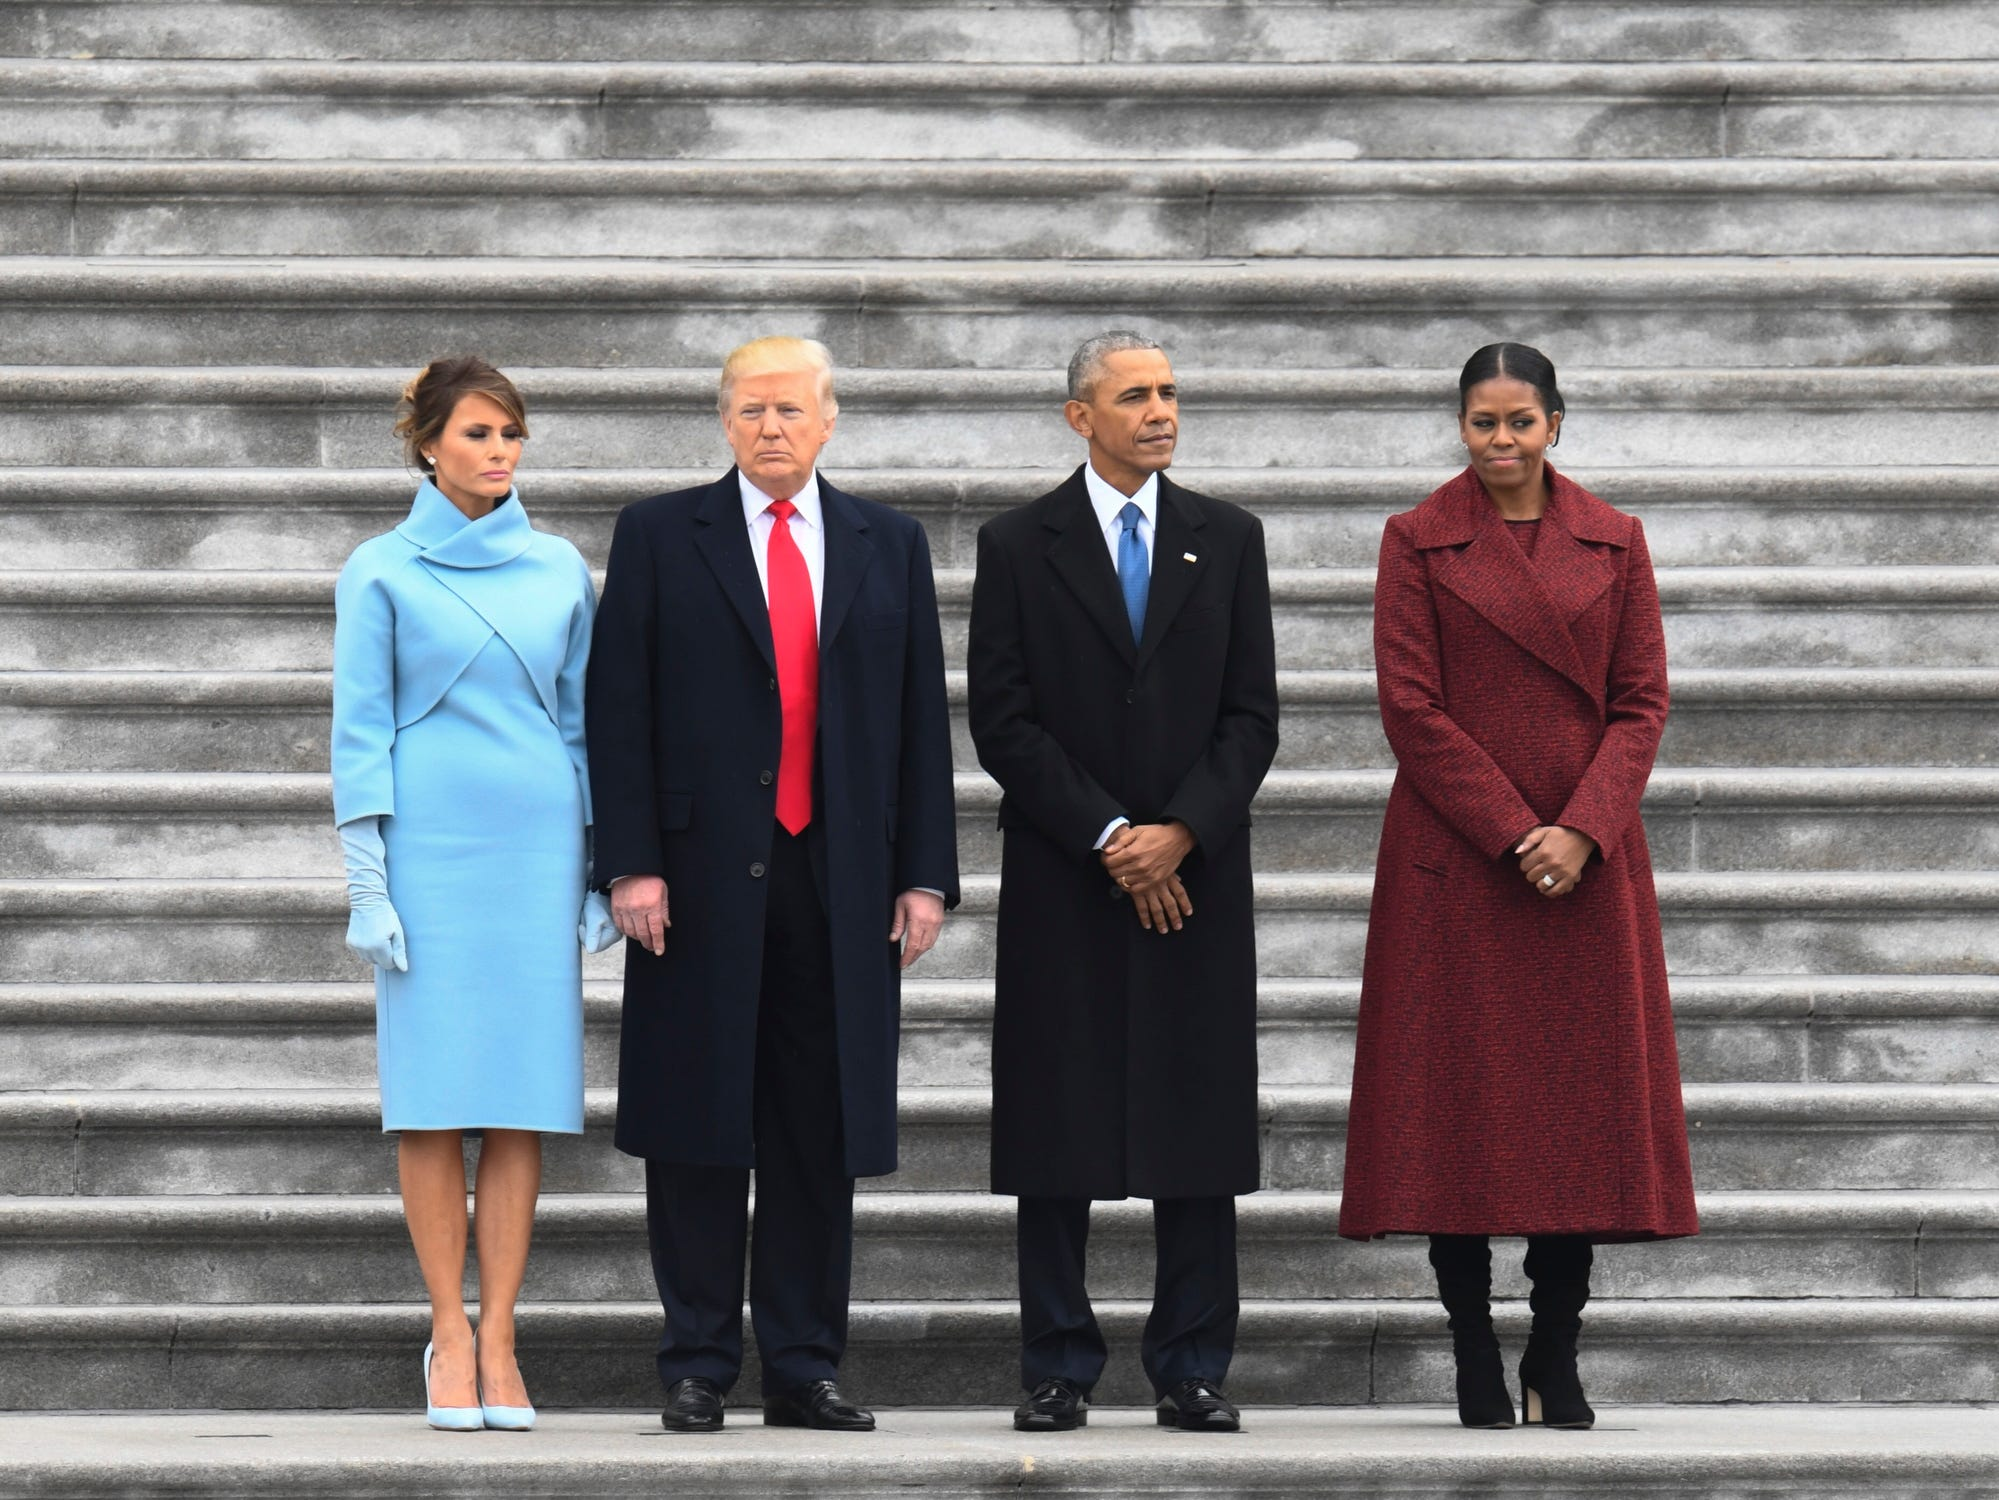 President Donald Trump stands with Melania Trump, former President Barack Obama and Michelle Obama, before the Obama's departs on Marine One after the 2017 Presidential Inauguration at the U.S. Capitol on Jan 20, 2017.